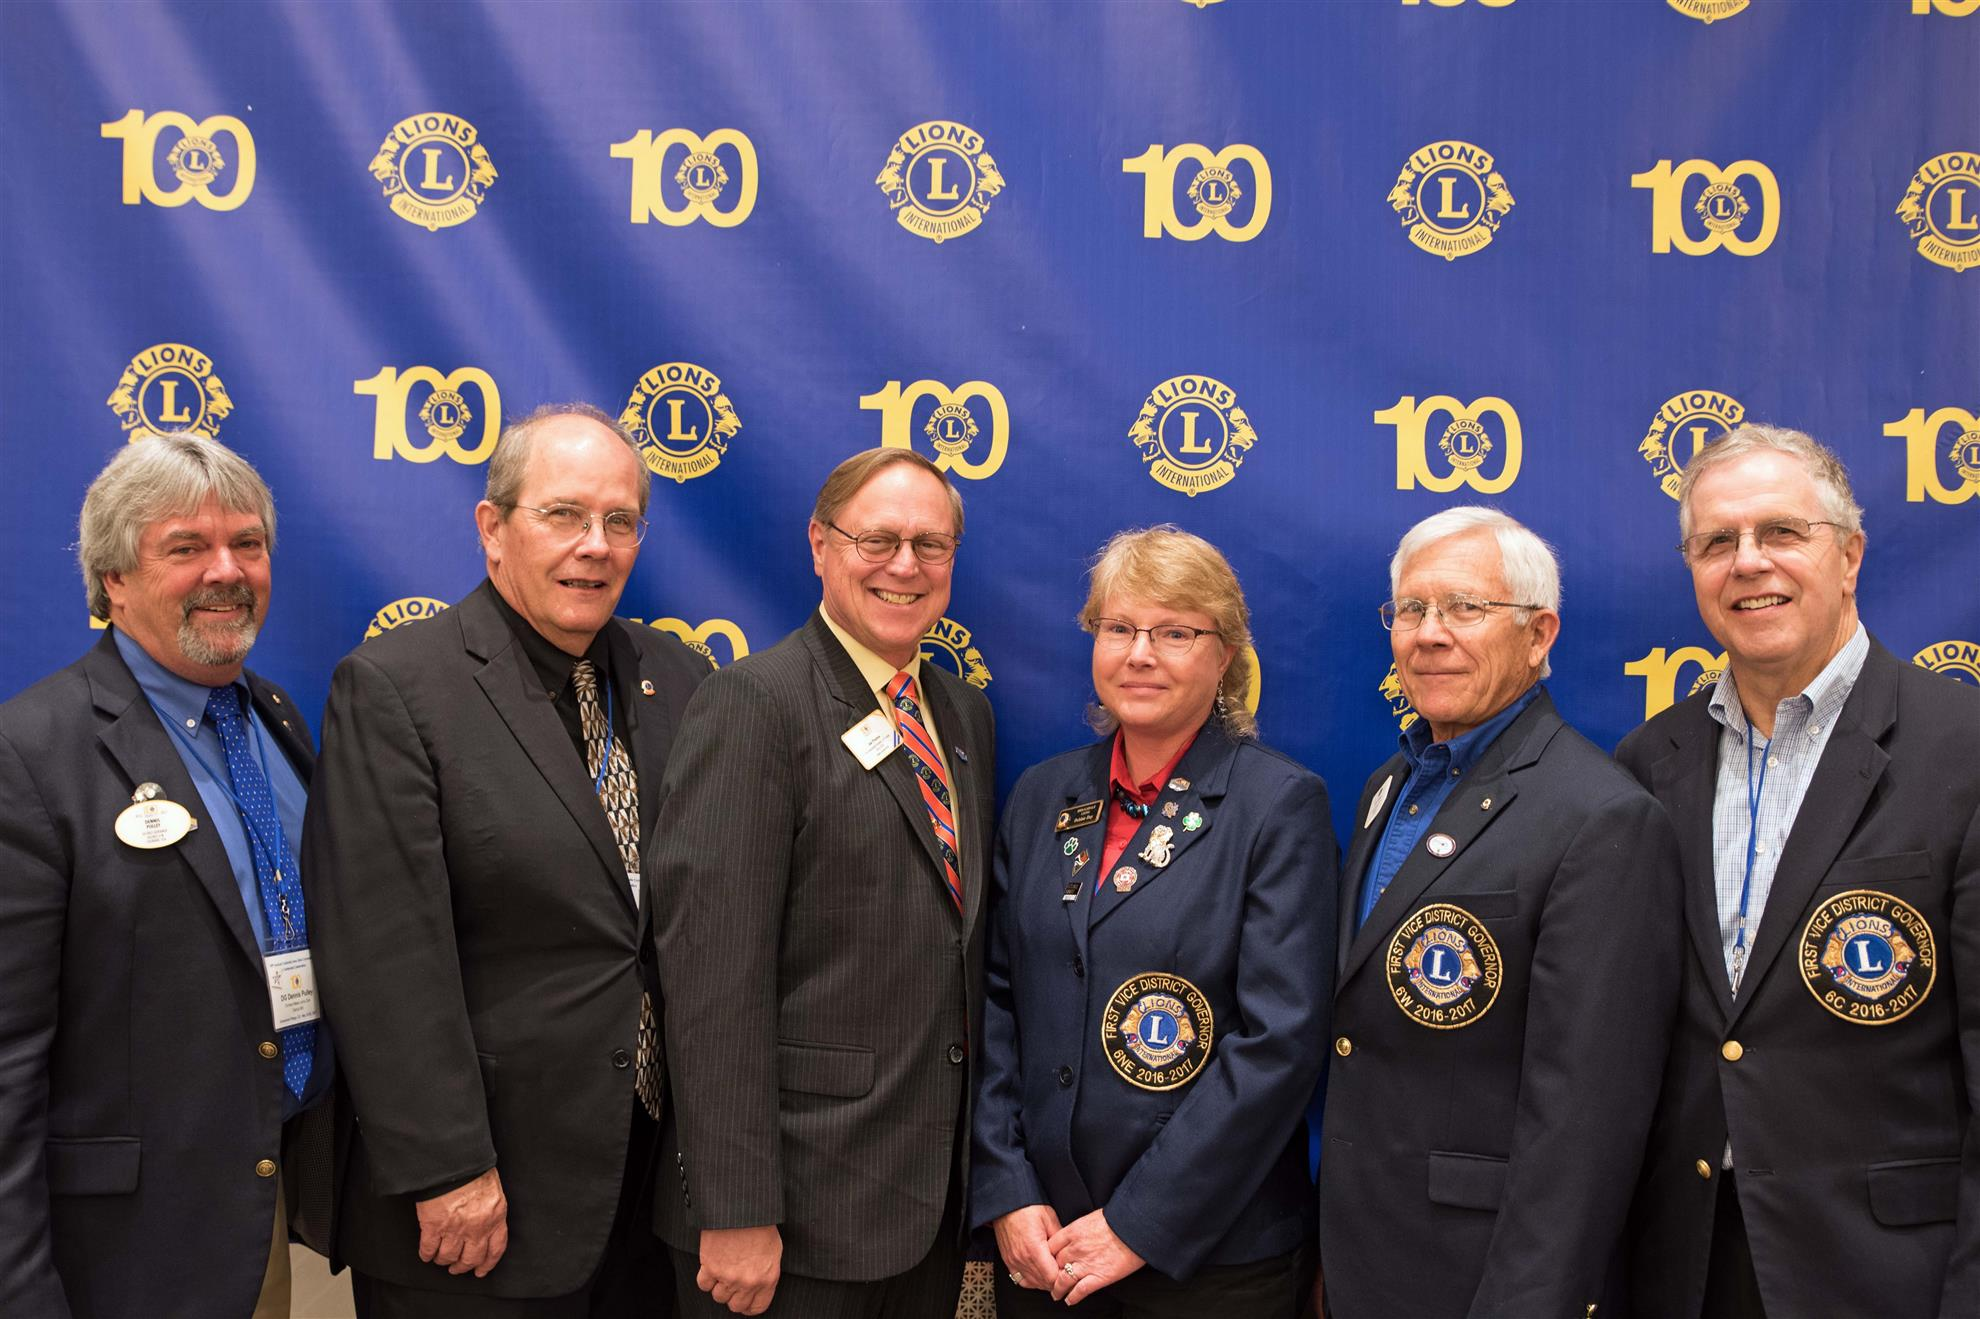 More From The 2017 Centennial Conventon Lions Club Of